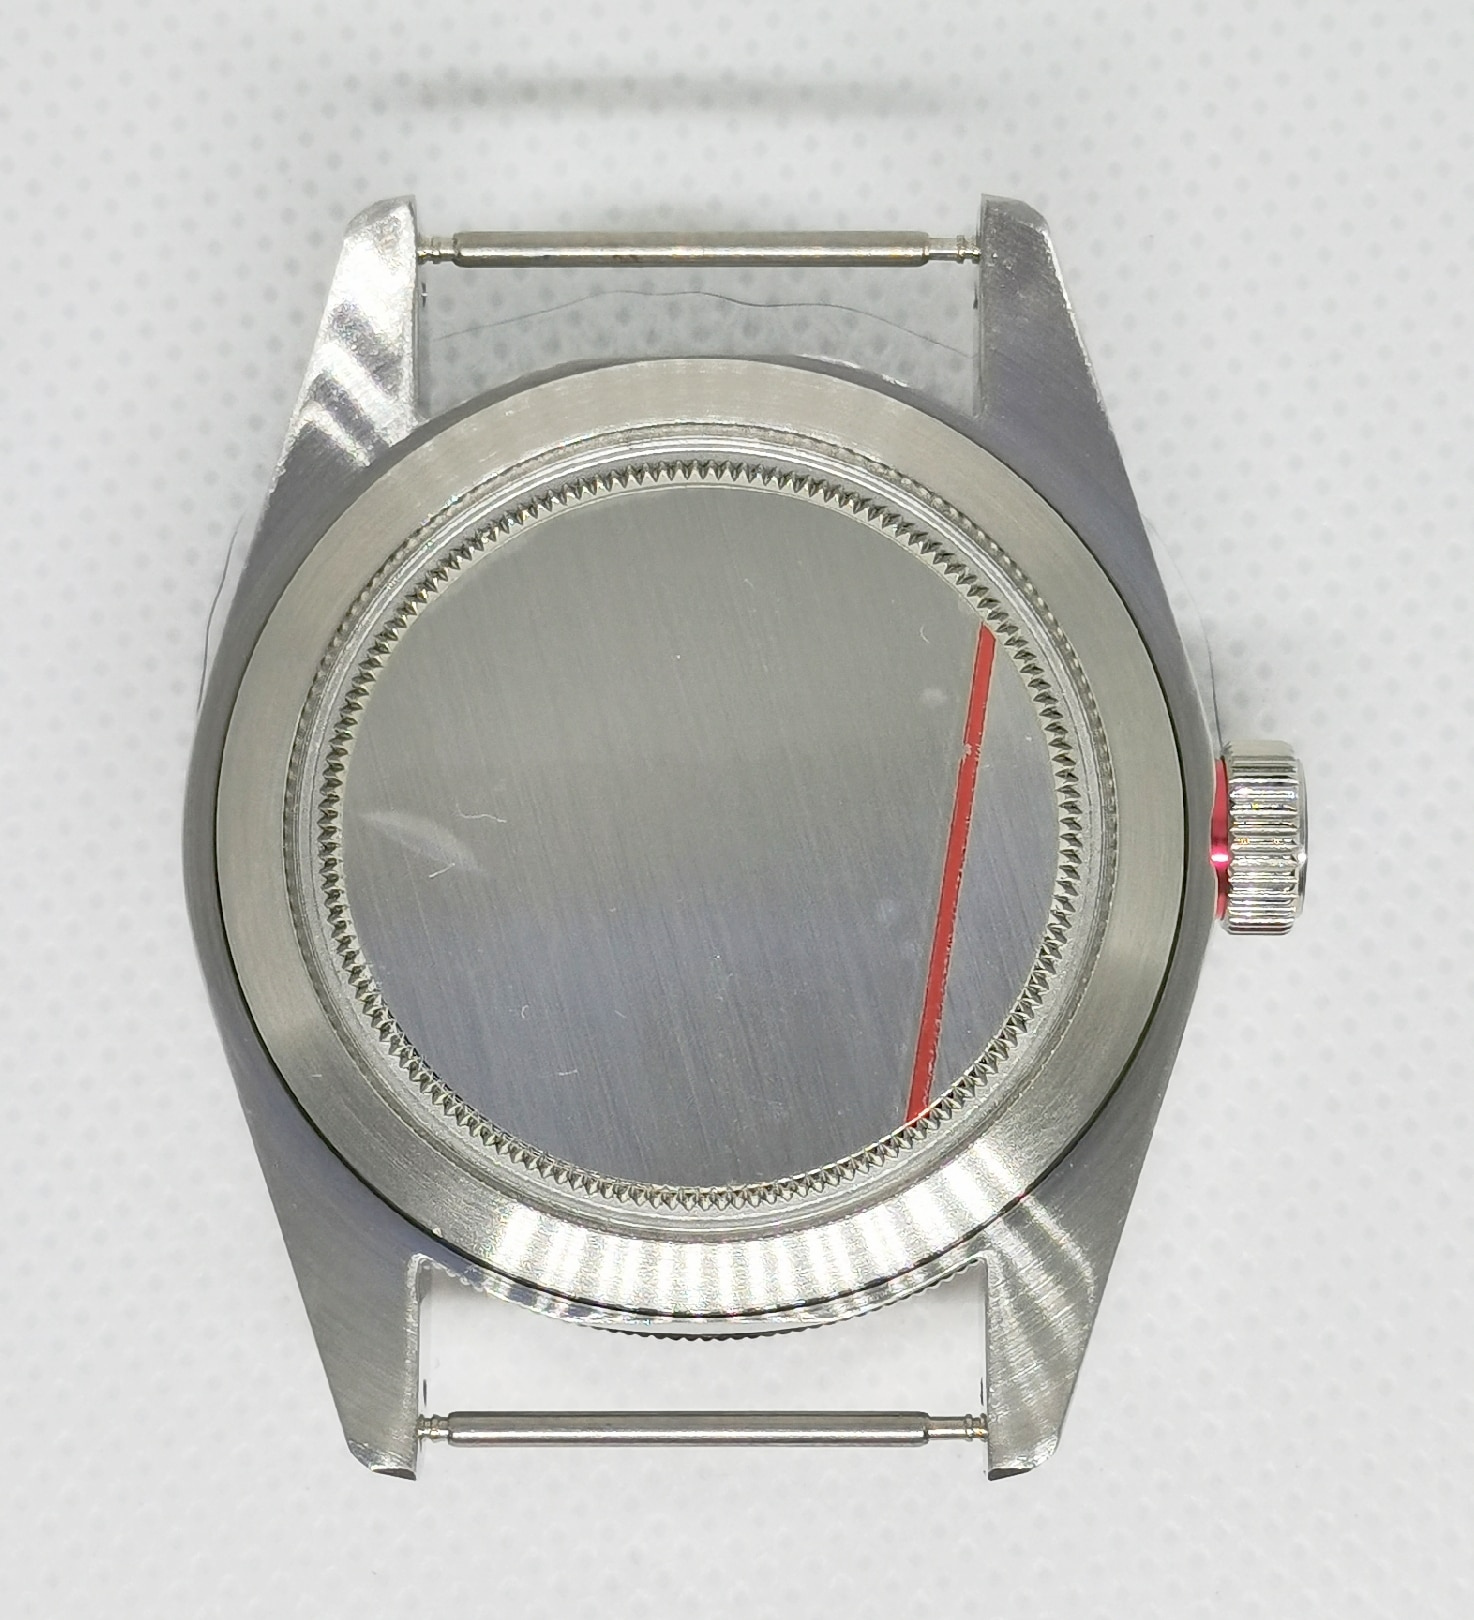 40MM 316 Stainless Steel Man's Watch Case Green Night Light Dial And Hands For Automatic Movement NH35 NH36 Miyota 8215 ETA 2836 enlarge